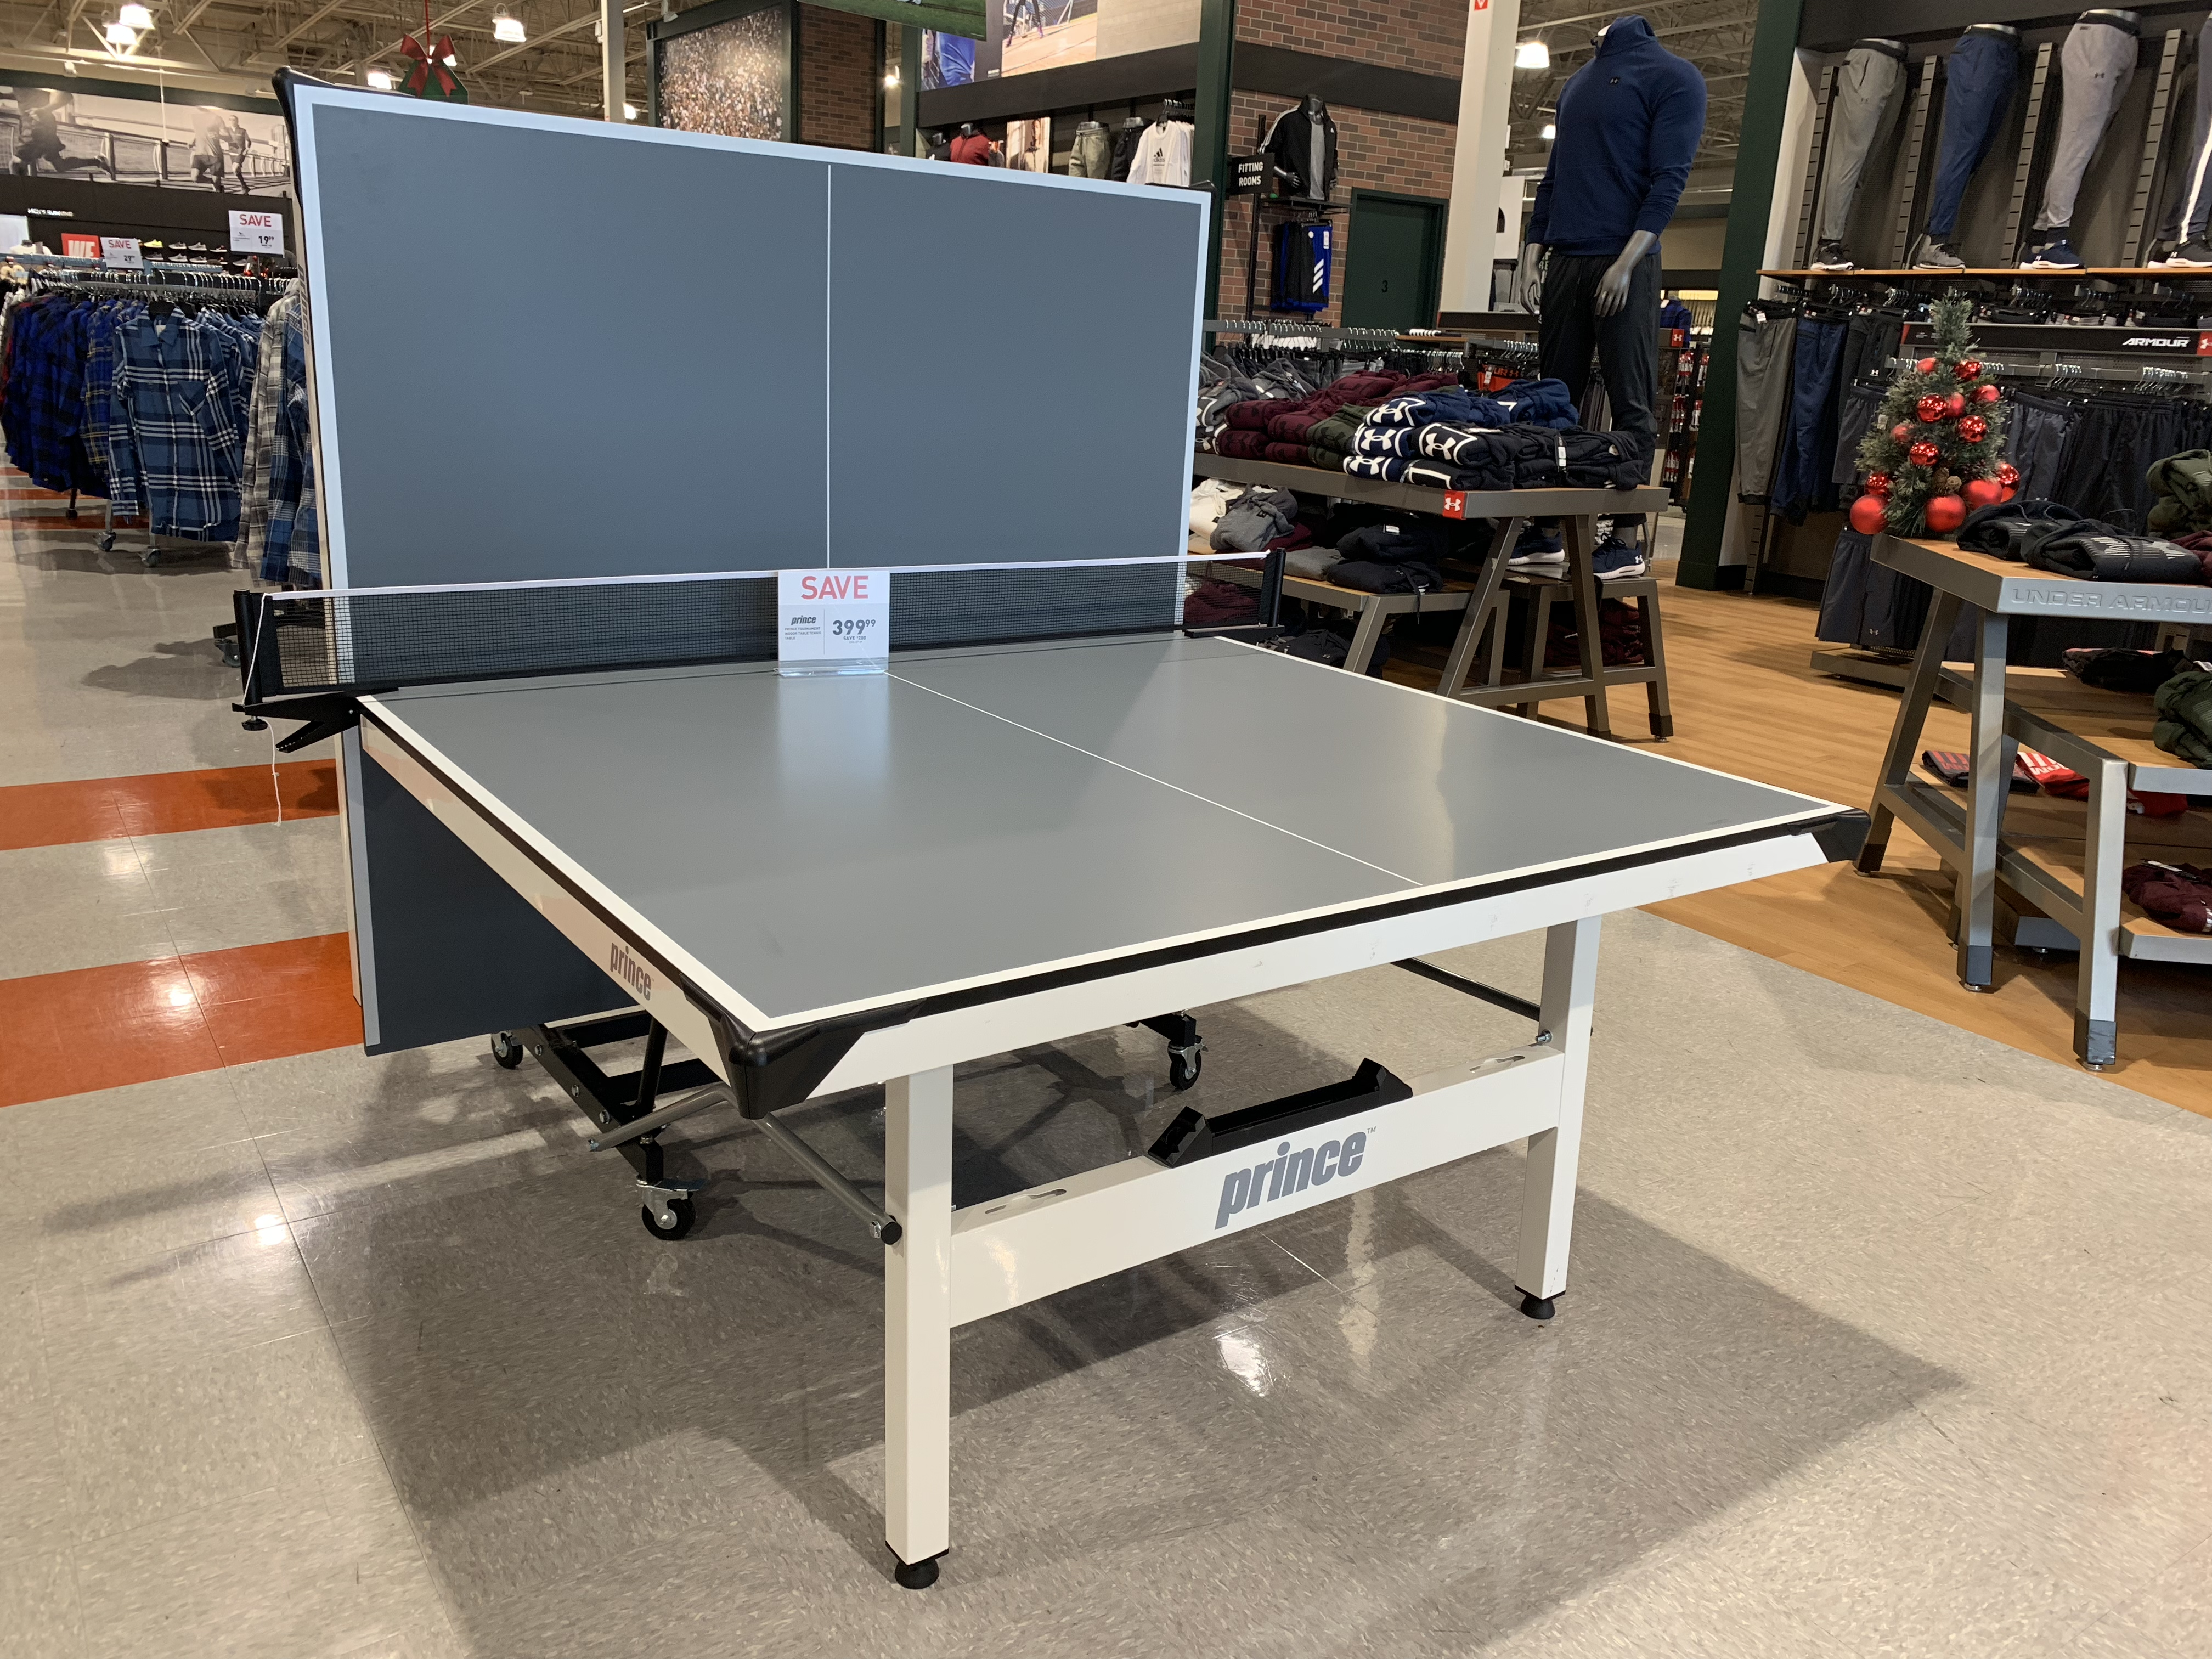 All The Best Dick S Sporting Goods Black Friday 2018 Deals